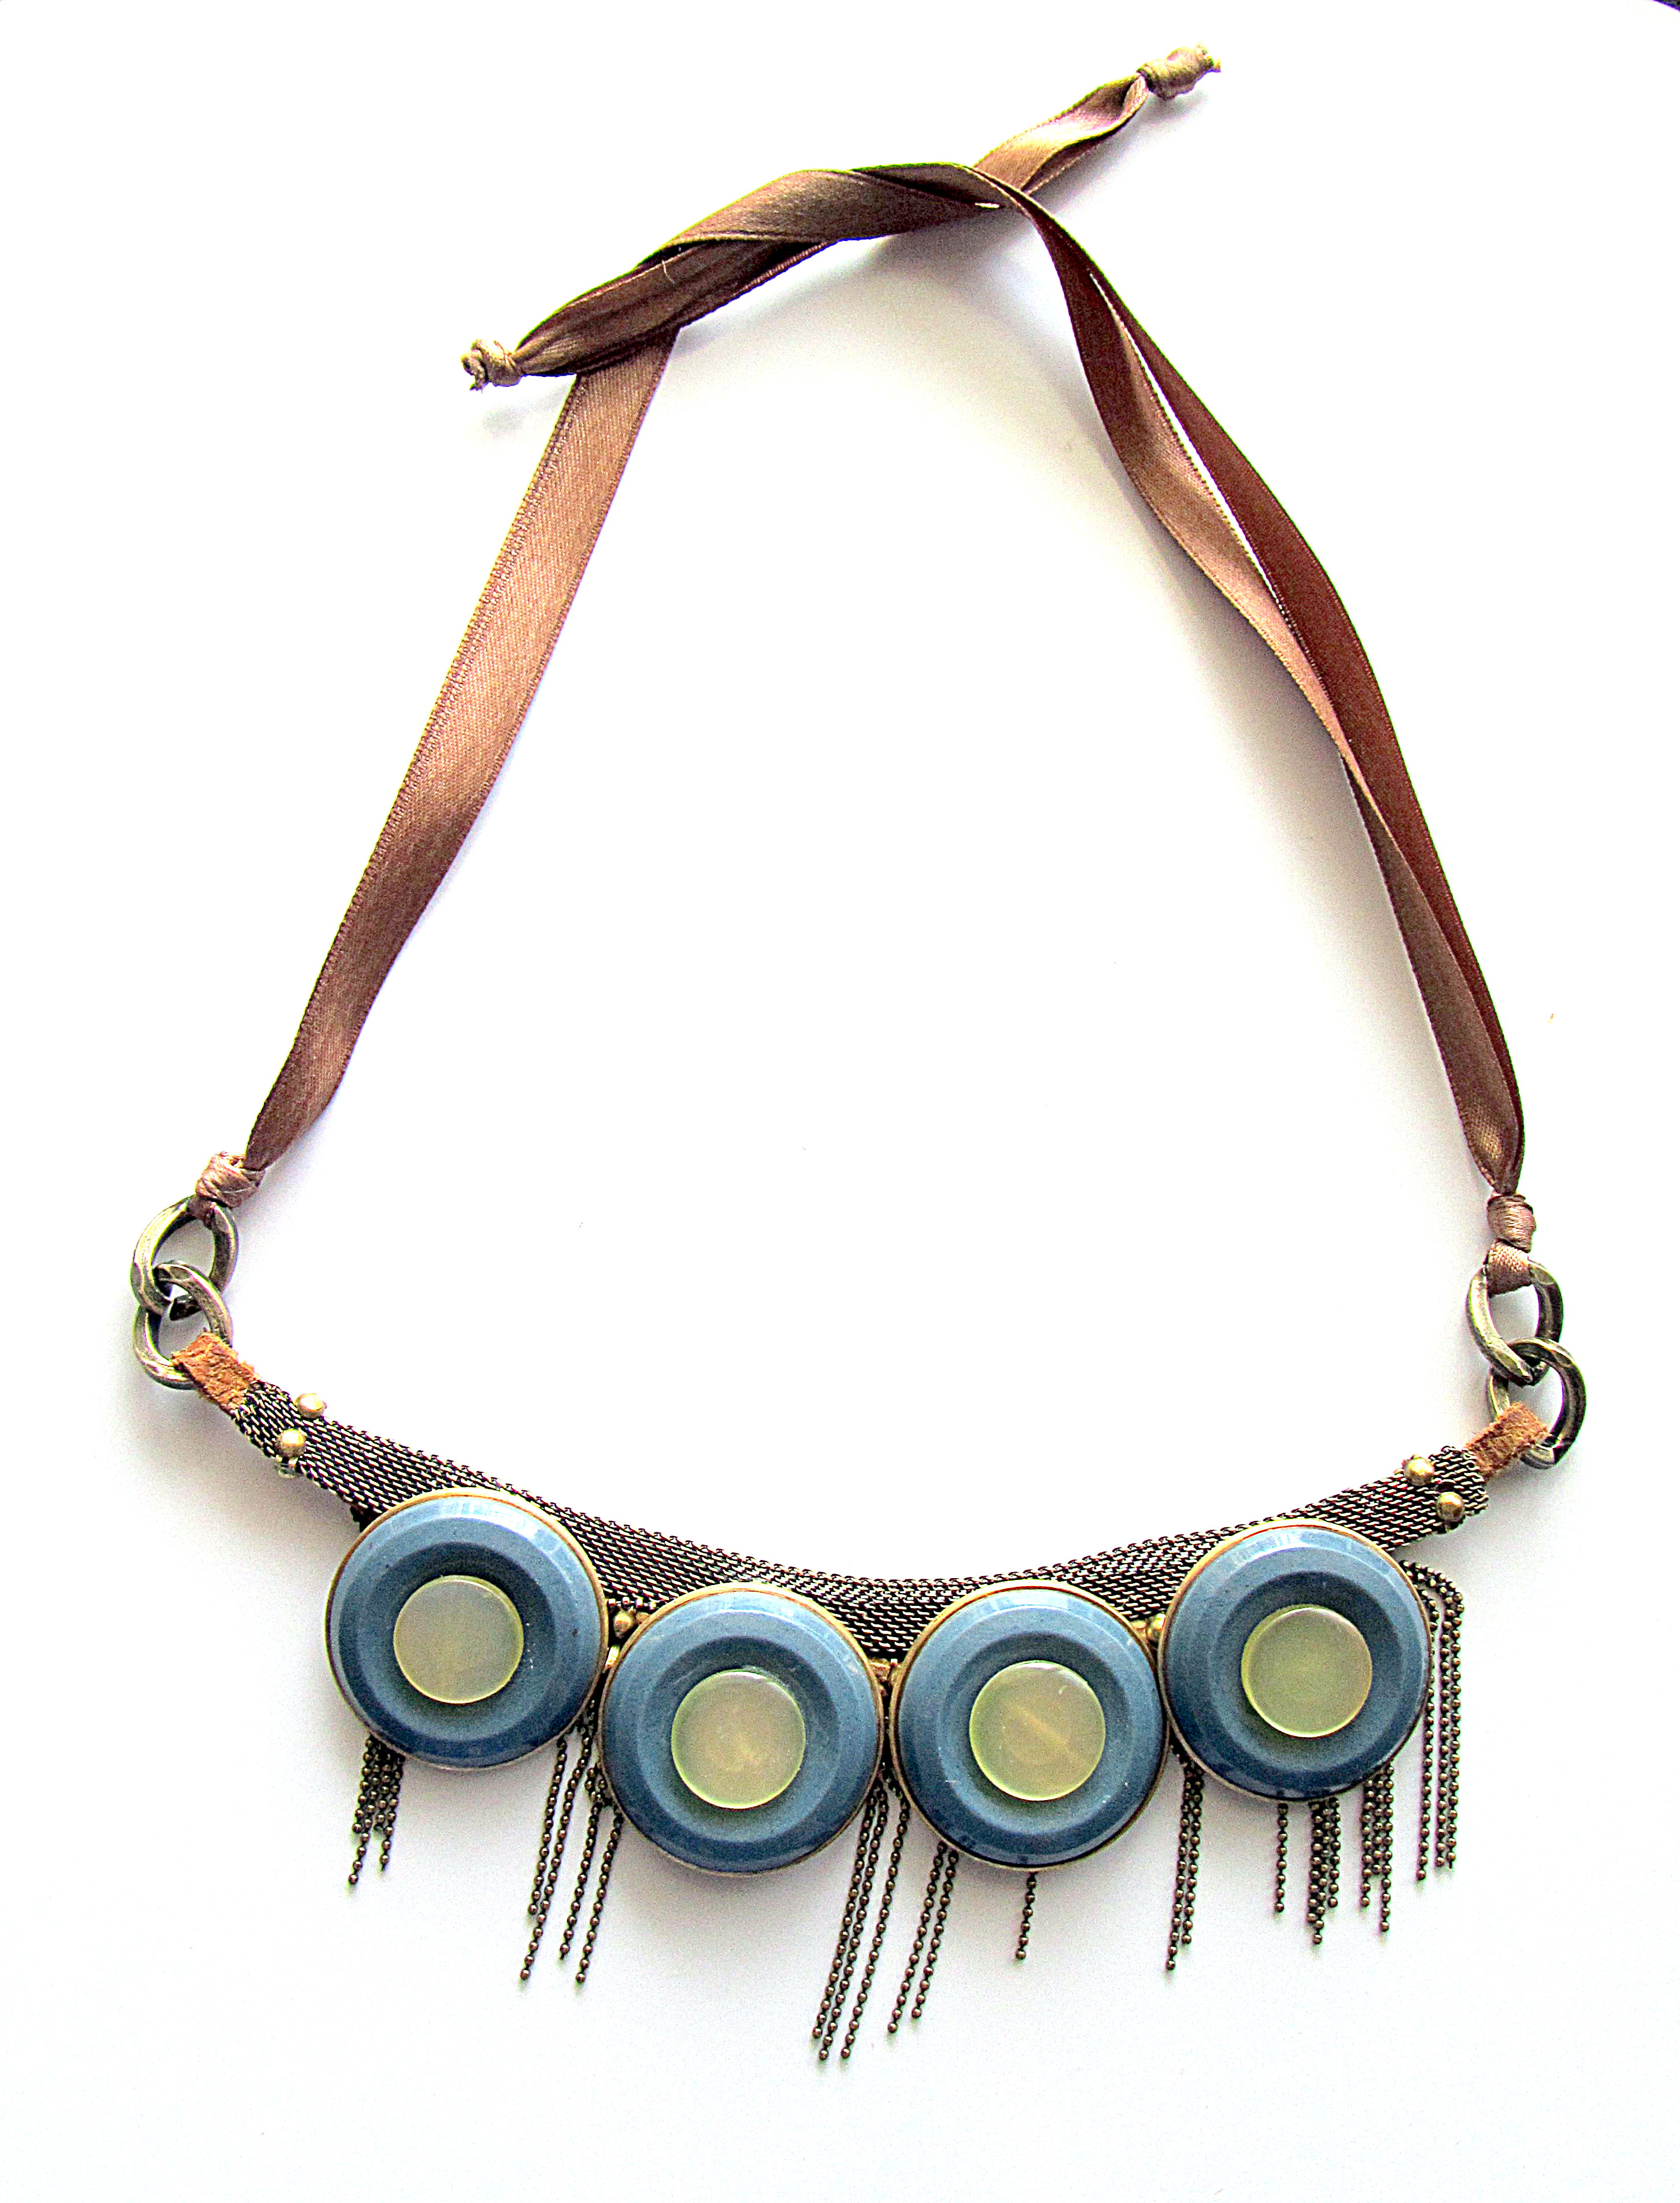 A necklace made of gray/ecru plastic